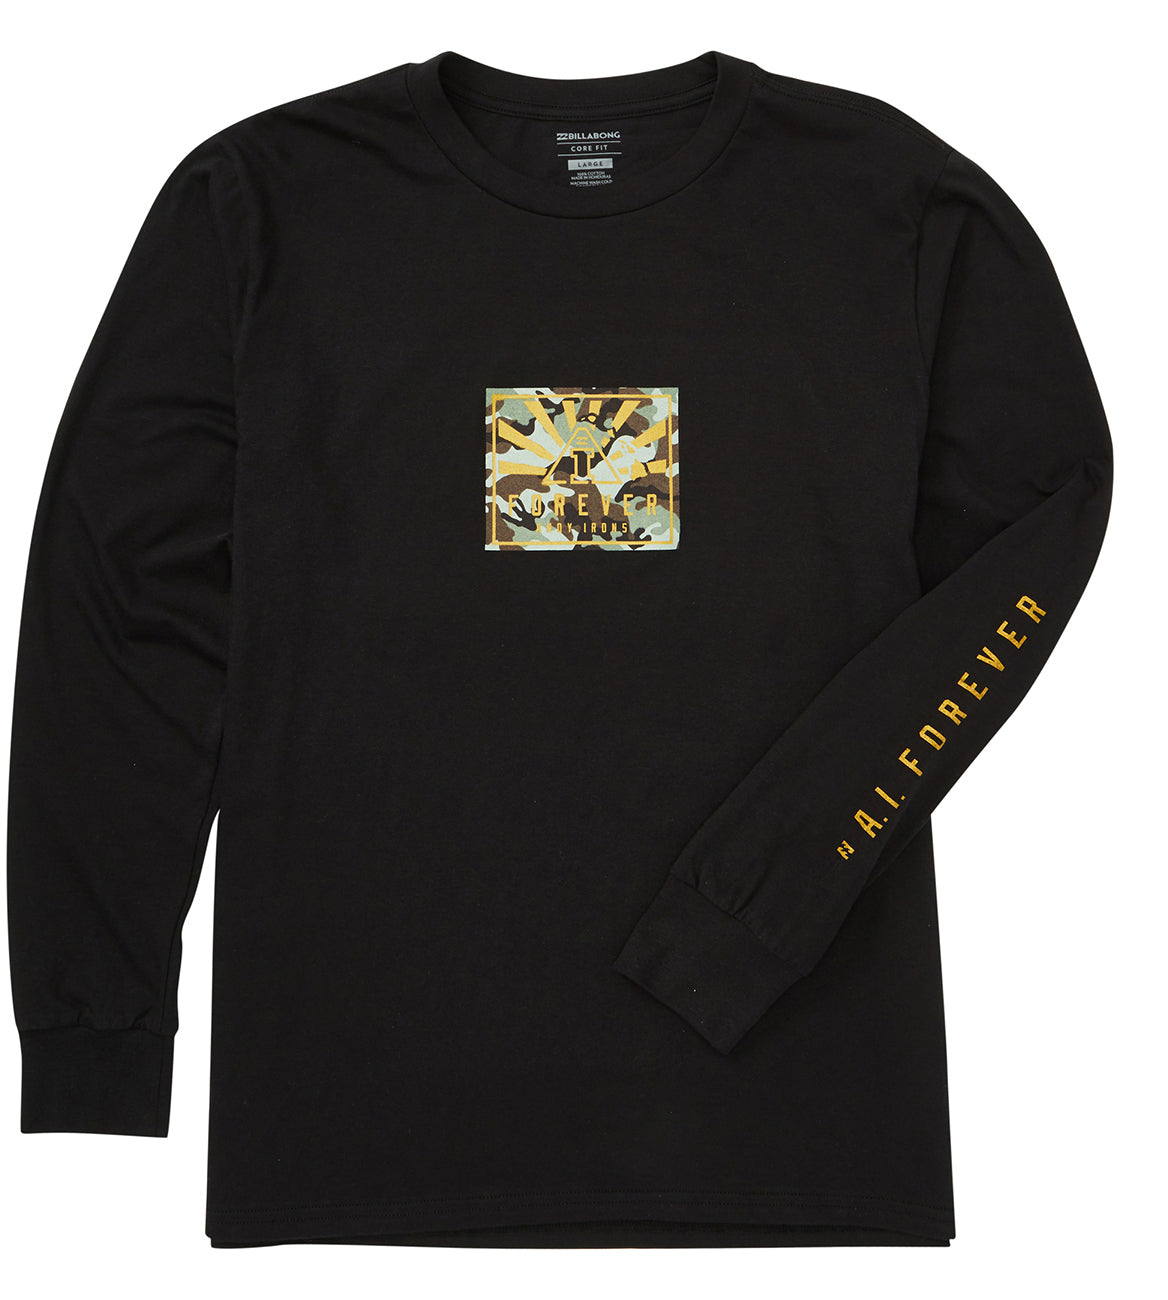 009383620d3 Billabong 2018 Mens Surf And Casual Wear Andy Irons Forever ...